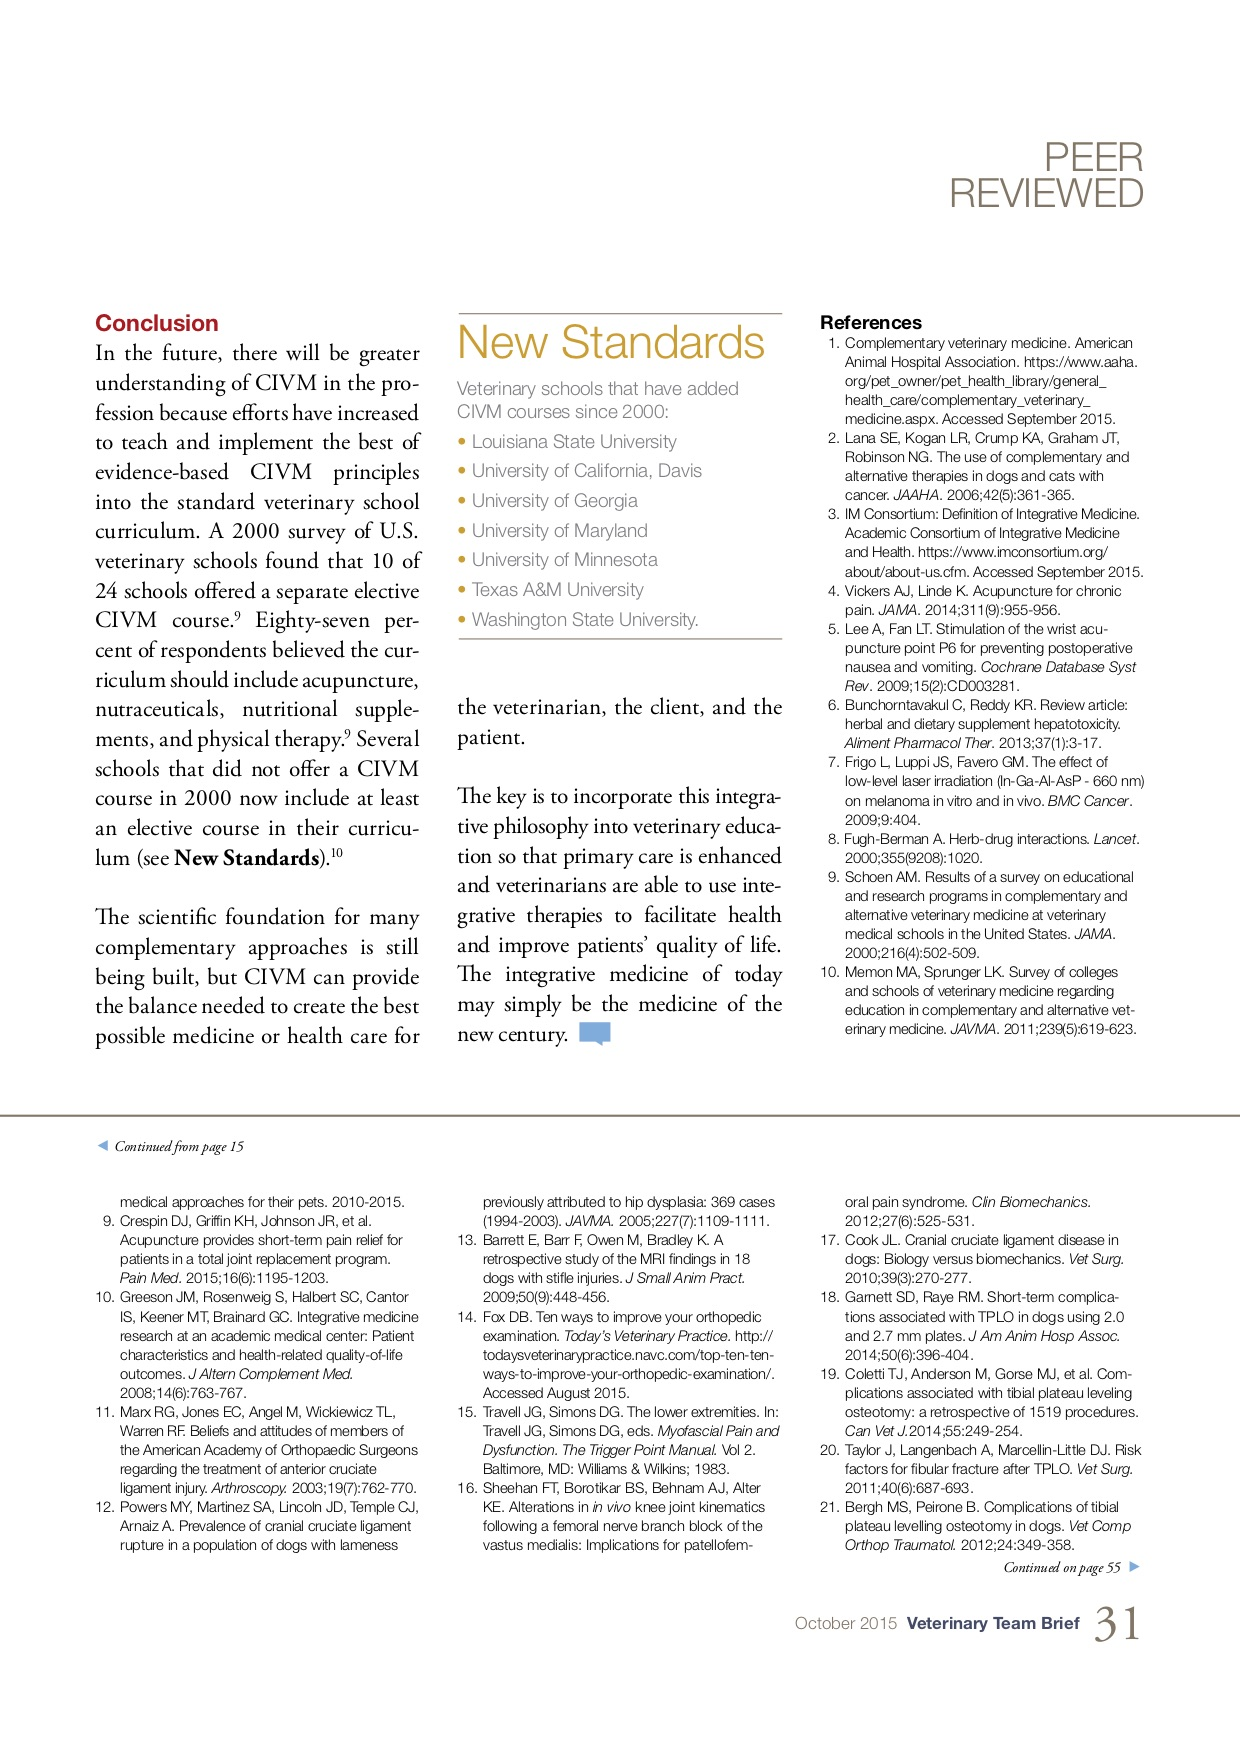 page 3-top-5-points-for-incorporating-complementary--integrative-medicine-into-practice-25036-article.jpg